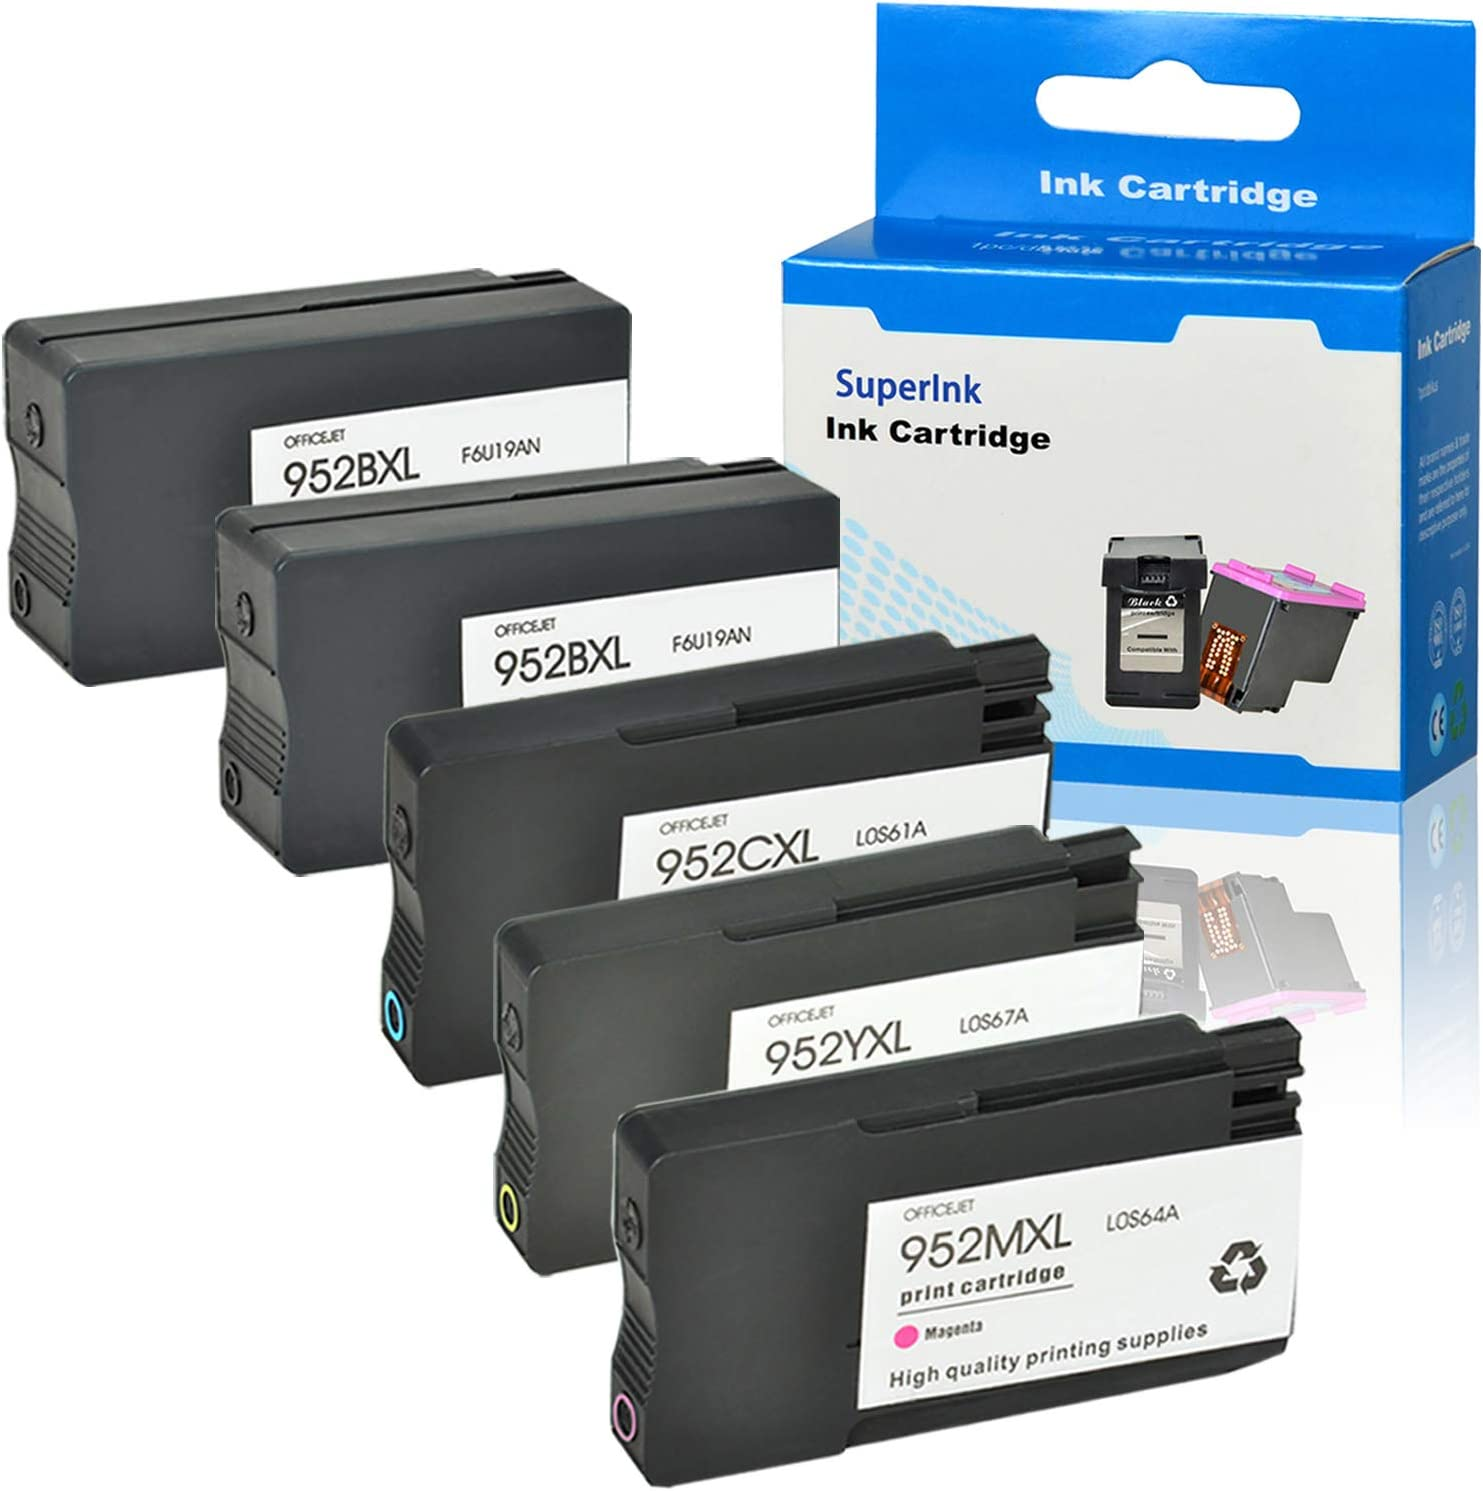 SuperInk High Yield Remanufactured Ink Cartridge Compatible for HP 952 952XL 952 XL use in Officejet Pro 8710 8720 8216 7720 7740 8200 8210 8715 8740 2 Black 1 Cyan 1 Yellow 1 Magenta,5-Pack